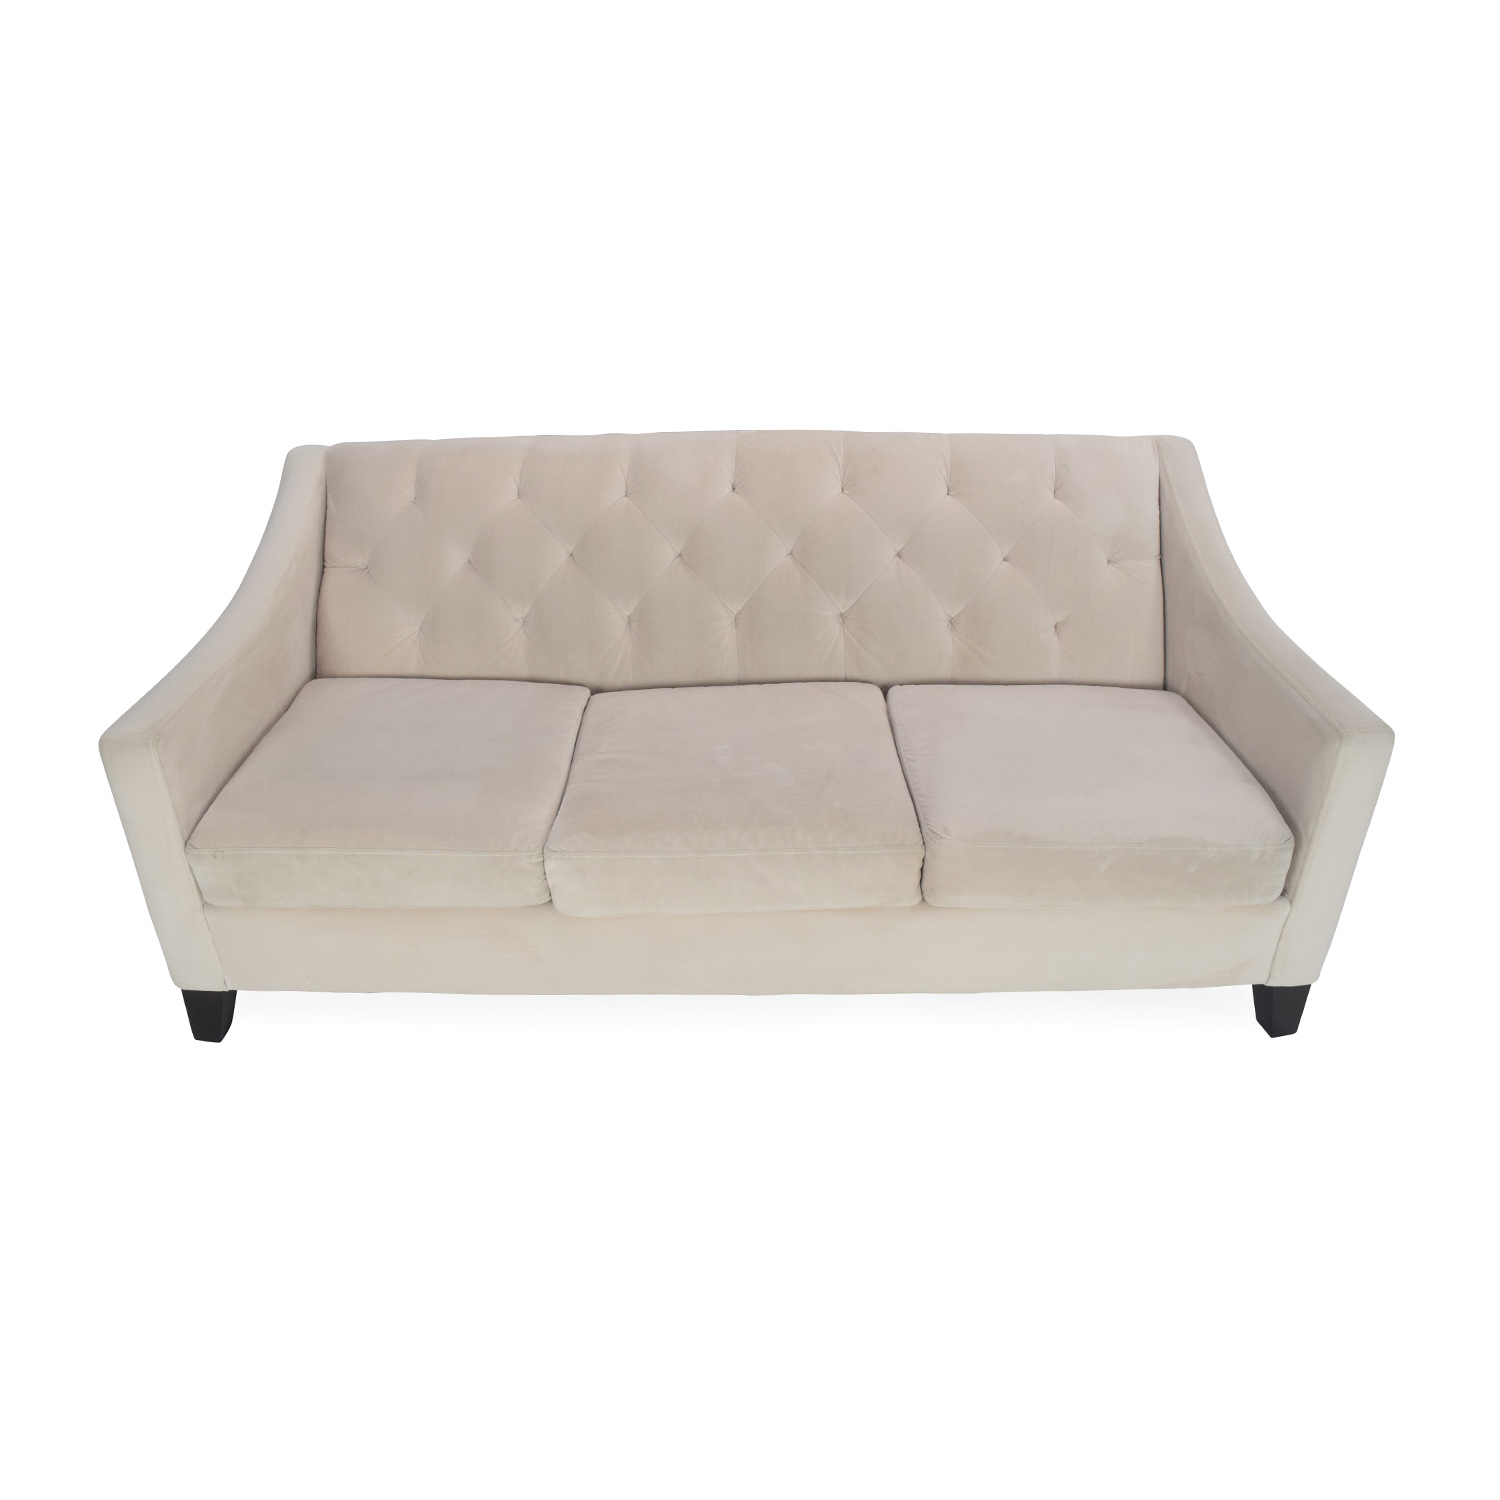 Max Home Sofa Max Home Dublin Sofa Jordan S Furniture